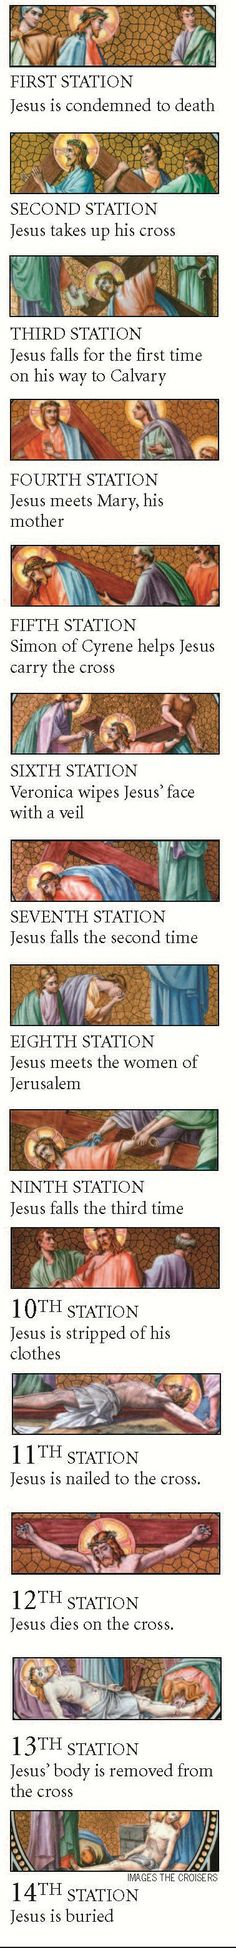 Stations of the Cross and other Lenten traditions http://osv.cm/UVHN5d (PDF)